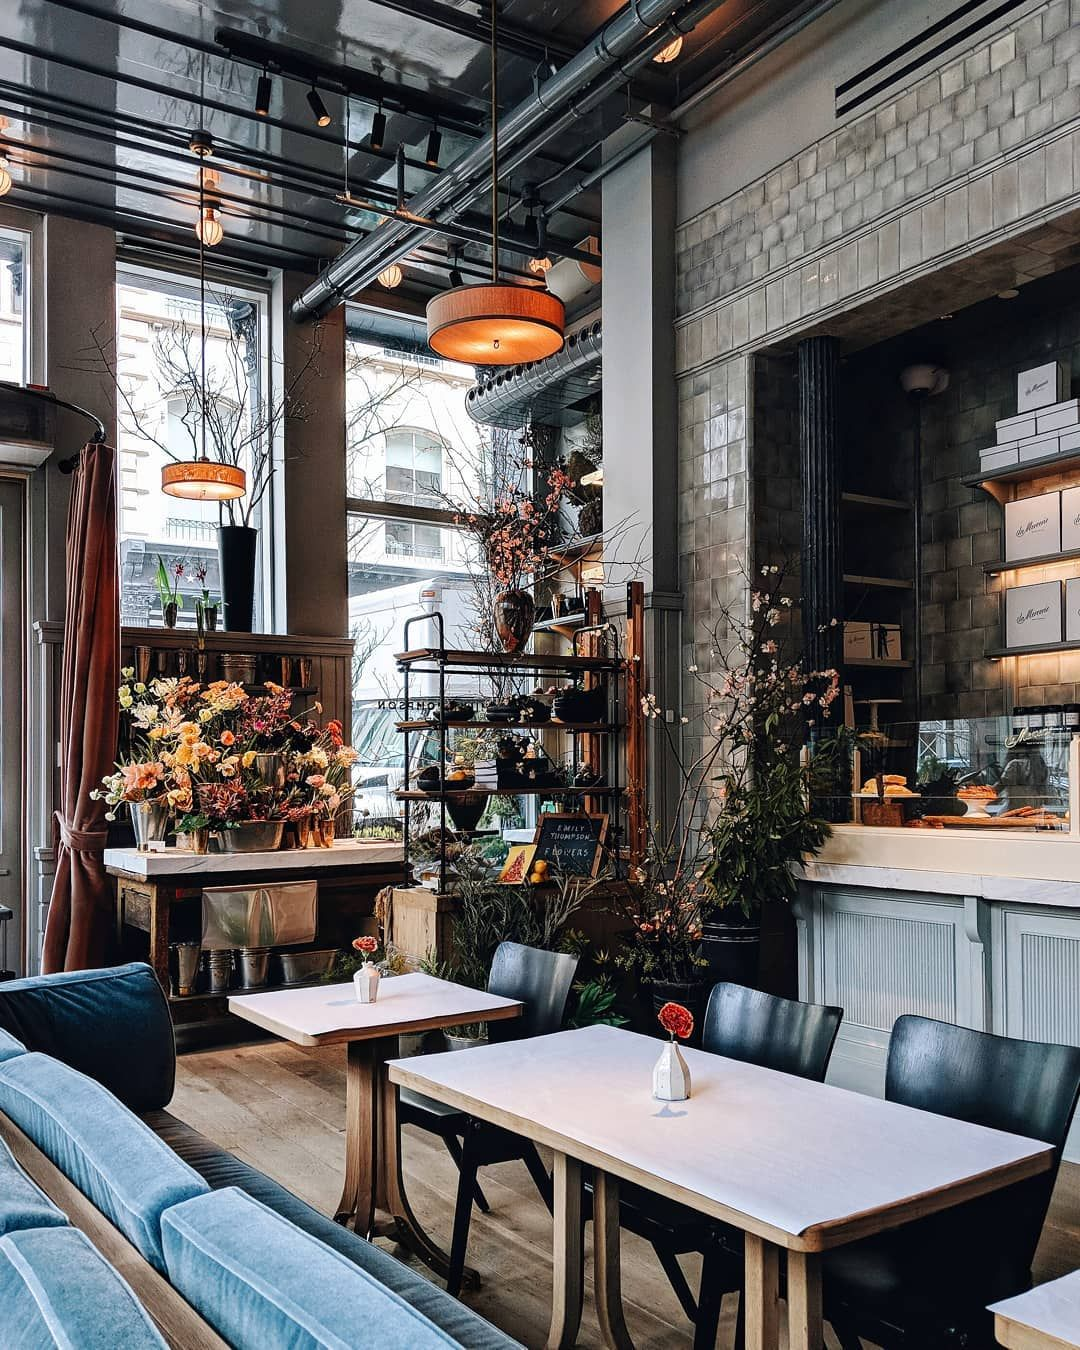 la mercerie cafe commercial interiors cafe design, cafe nyc